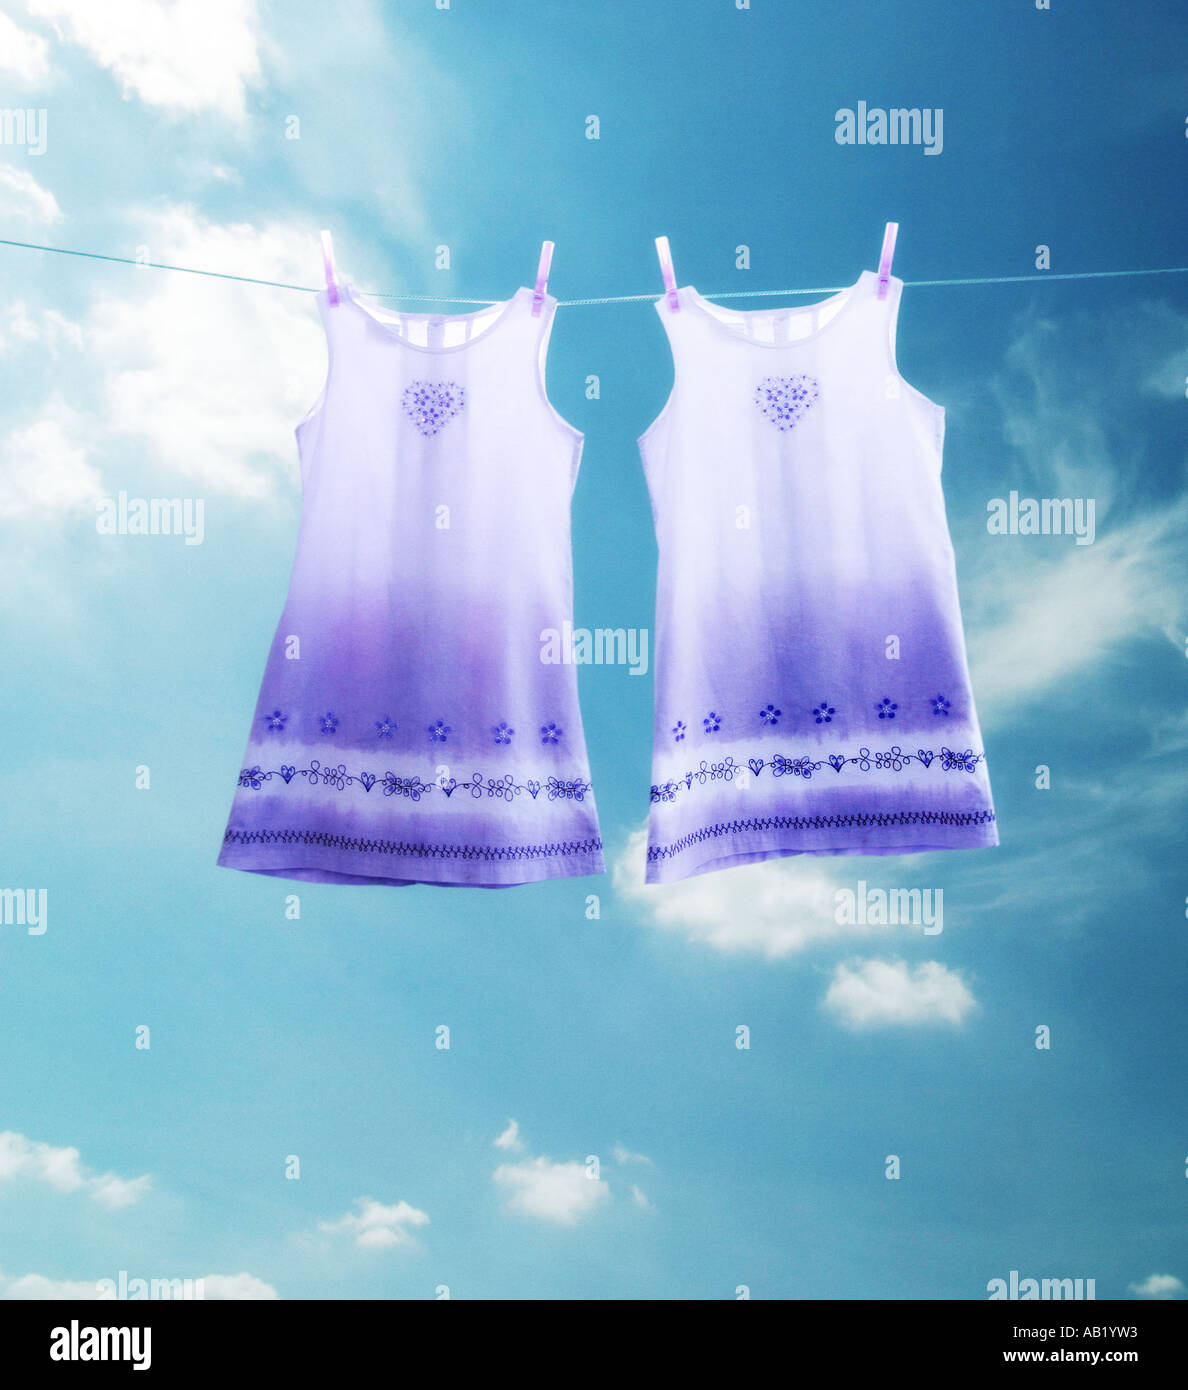 identical dresses hanging on a washing line - Stock Image